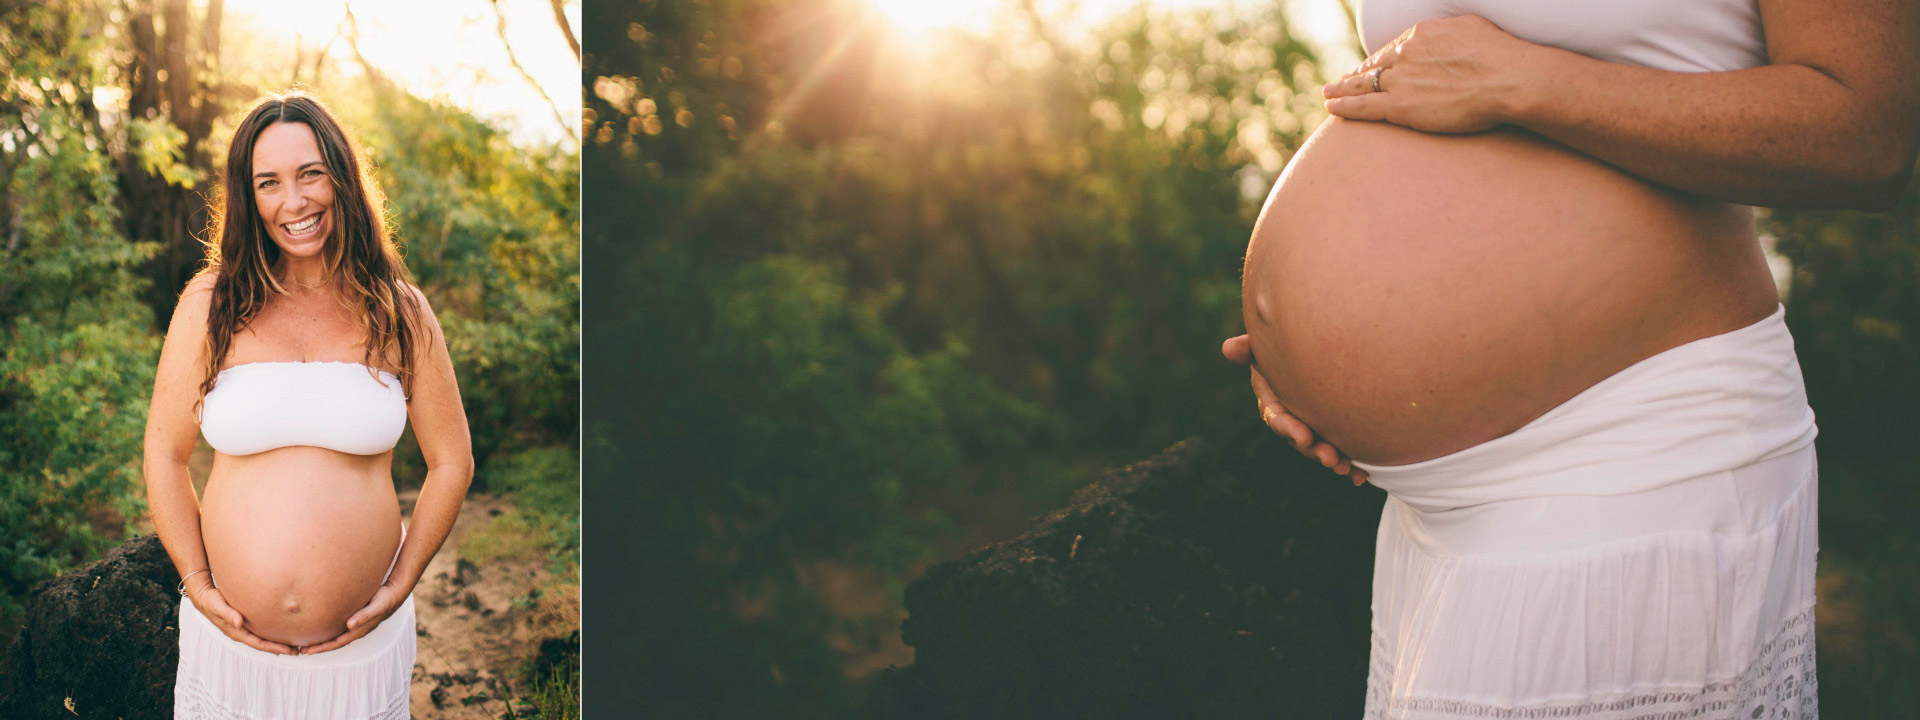 cadencia photography is a pregnancy photographer located in maui